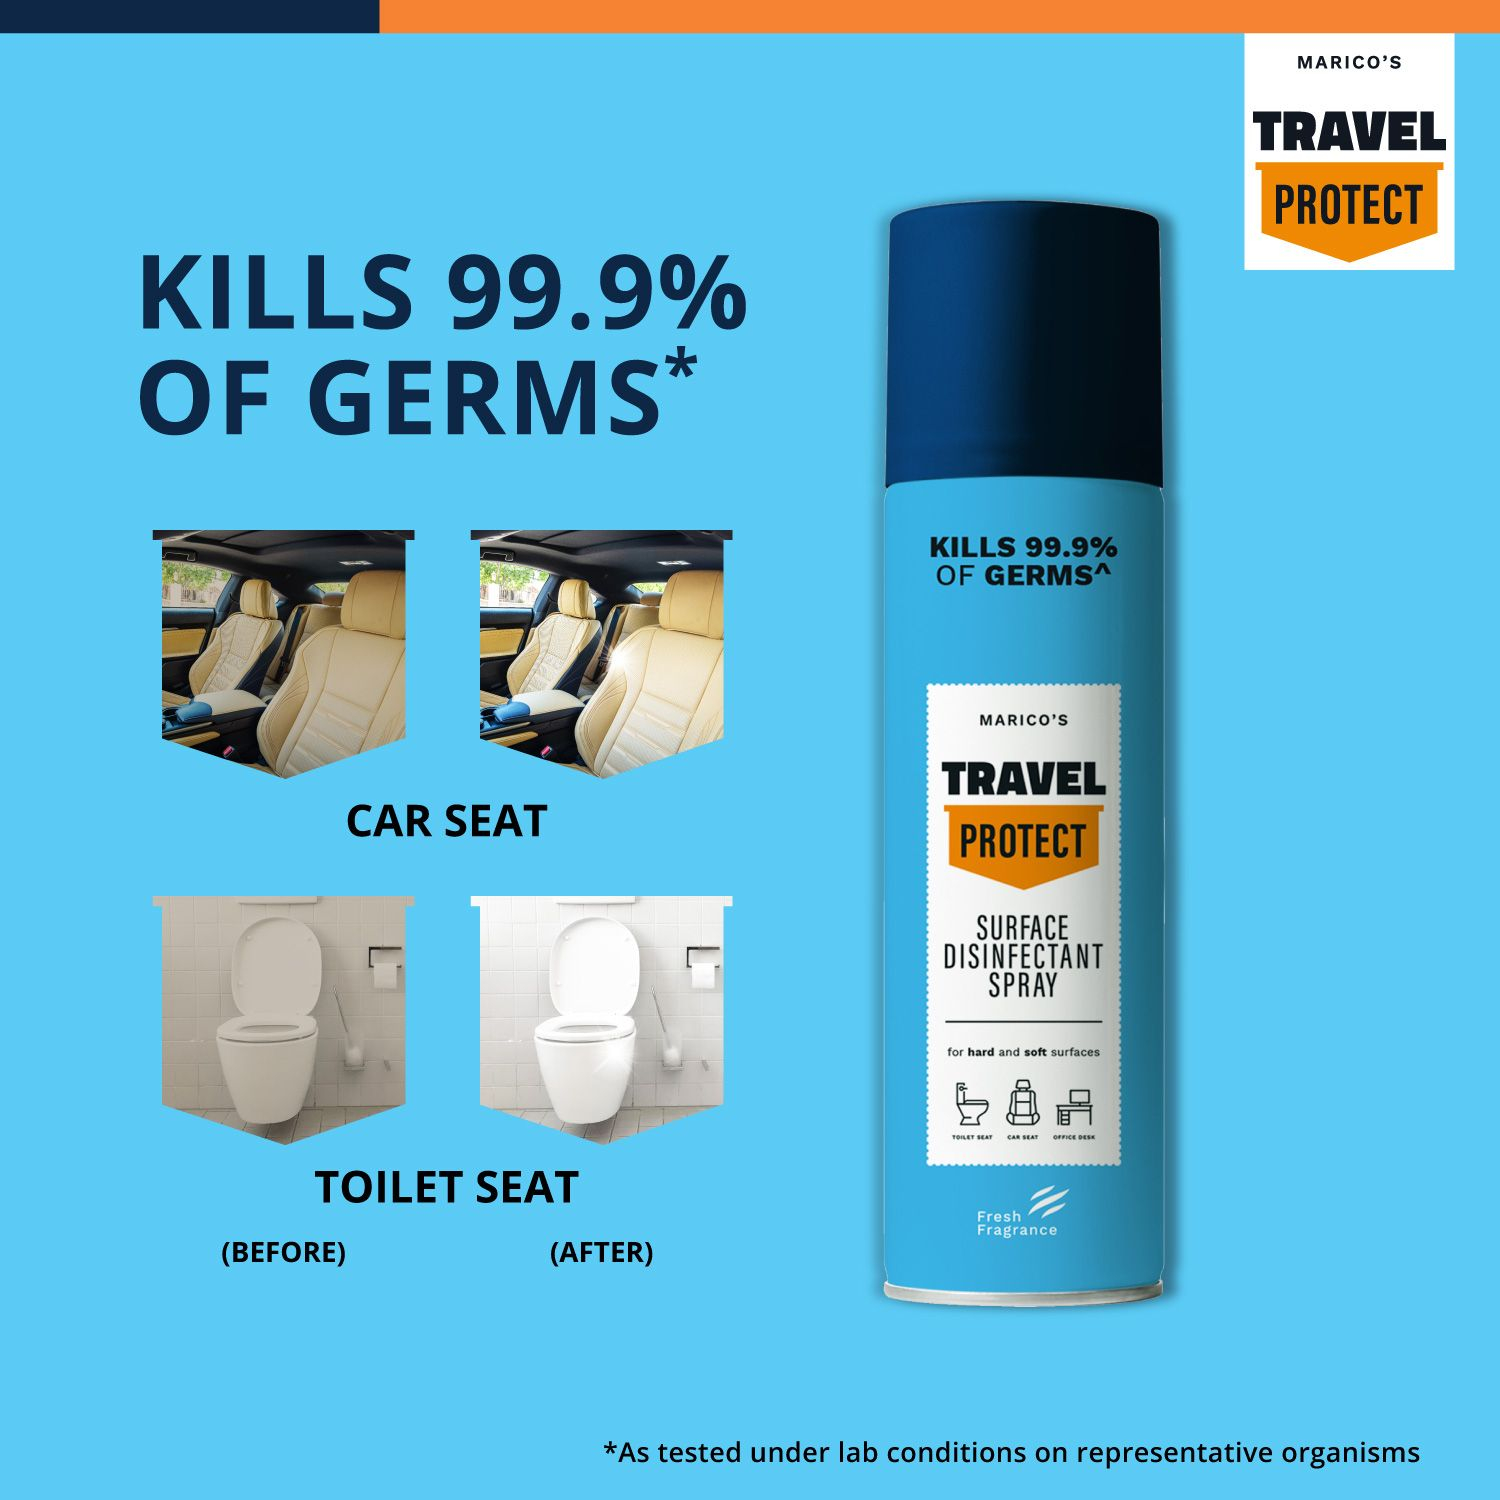 Marico's Travel Protect Surface Disinfectant Spray - 200 Ml